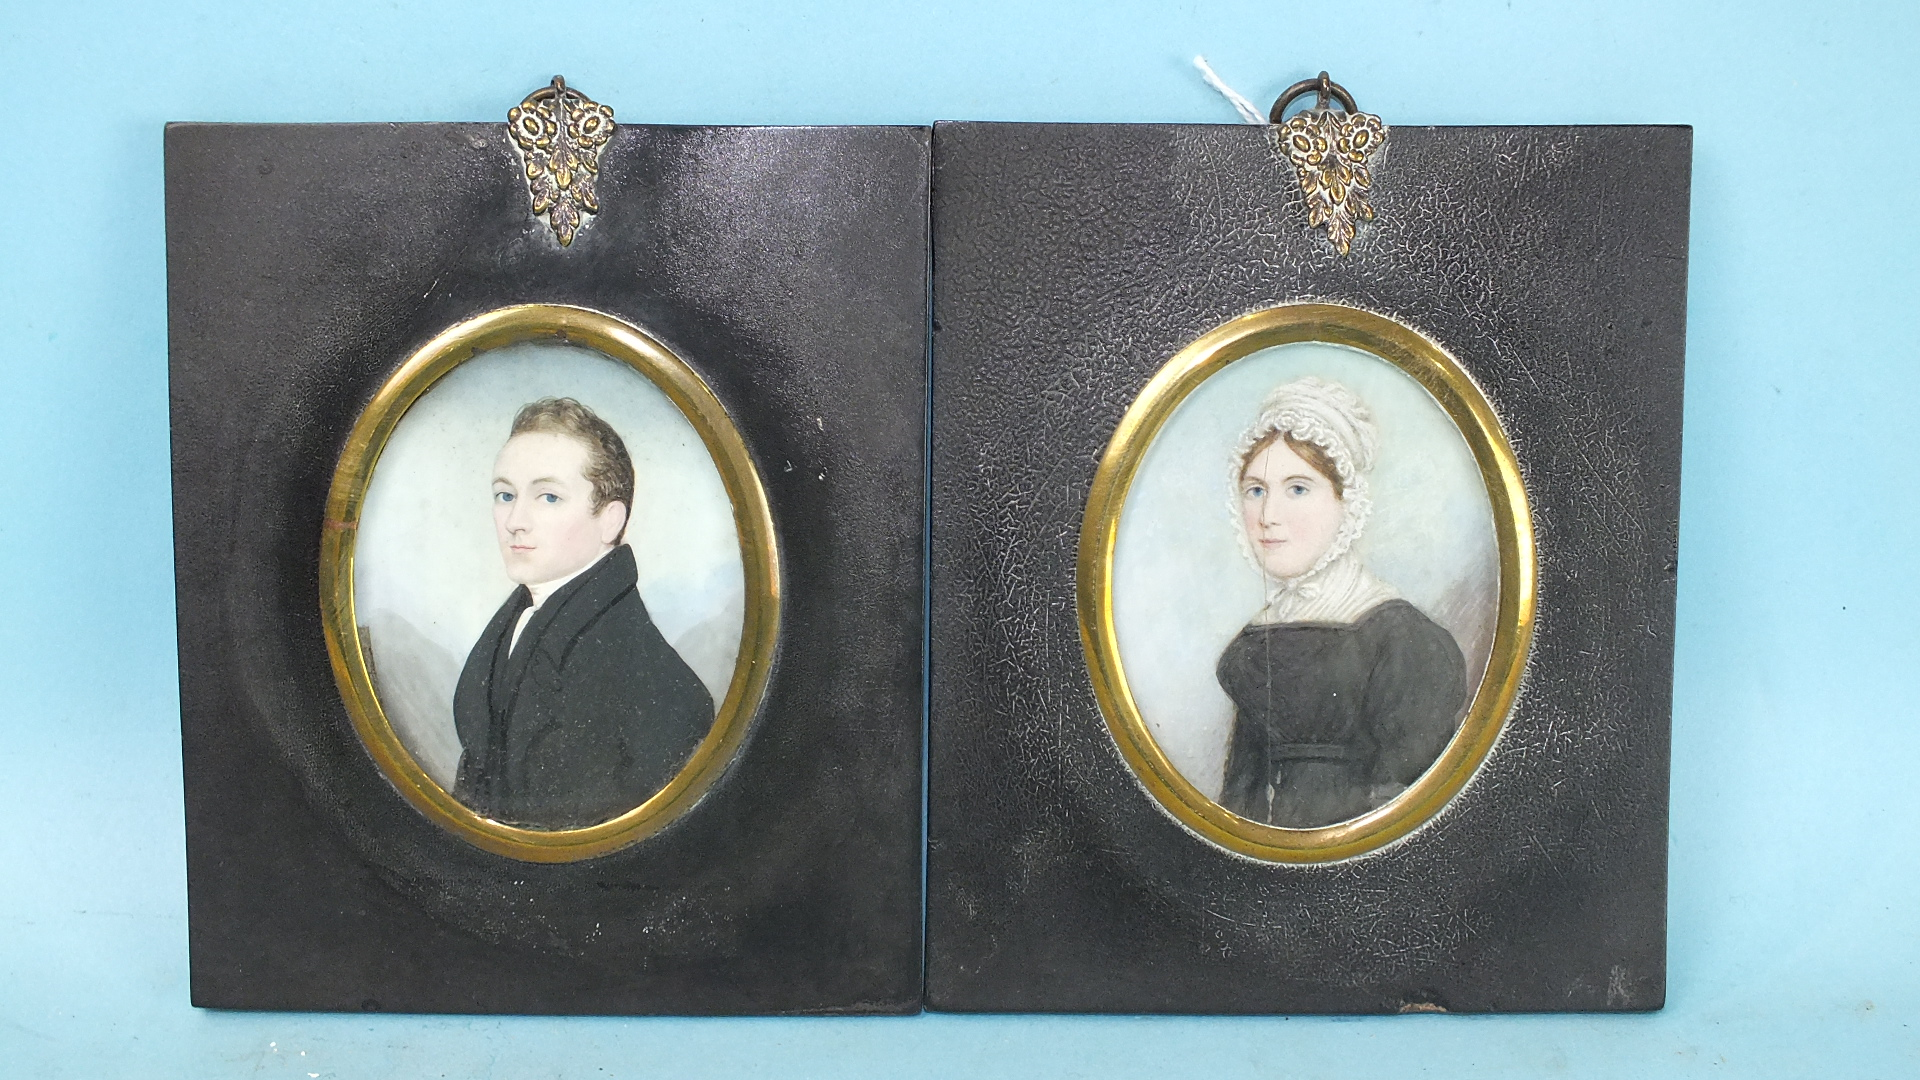 Lot 56 - 19th century, an oval miniature portrait of a young lady wearing a white lace-trimmed dress,